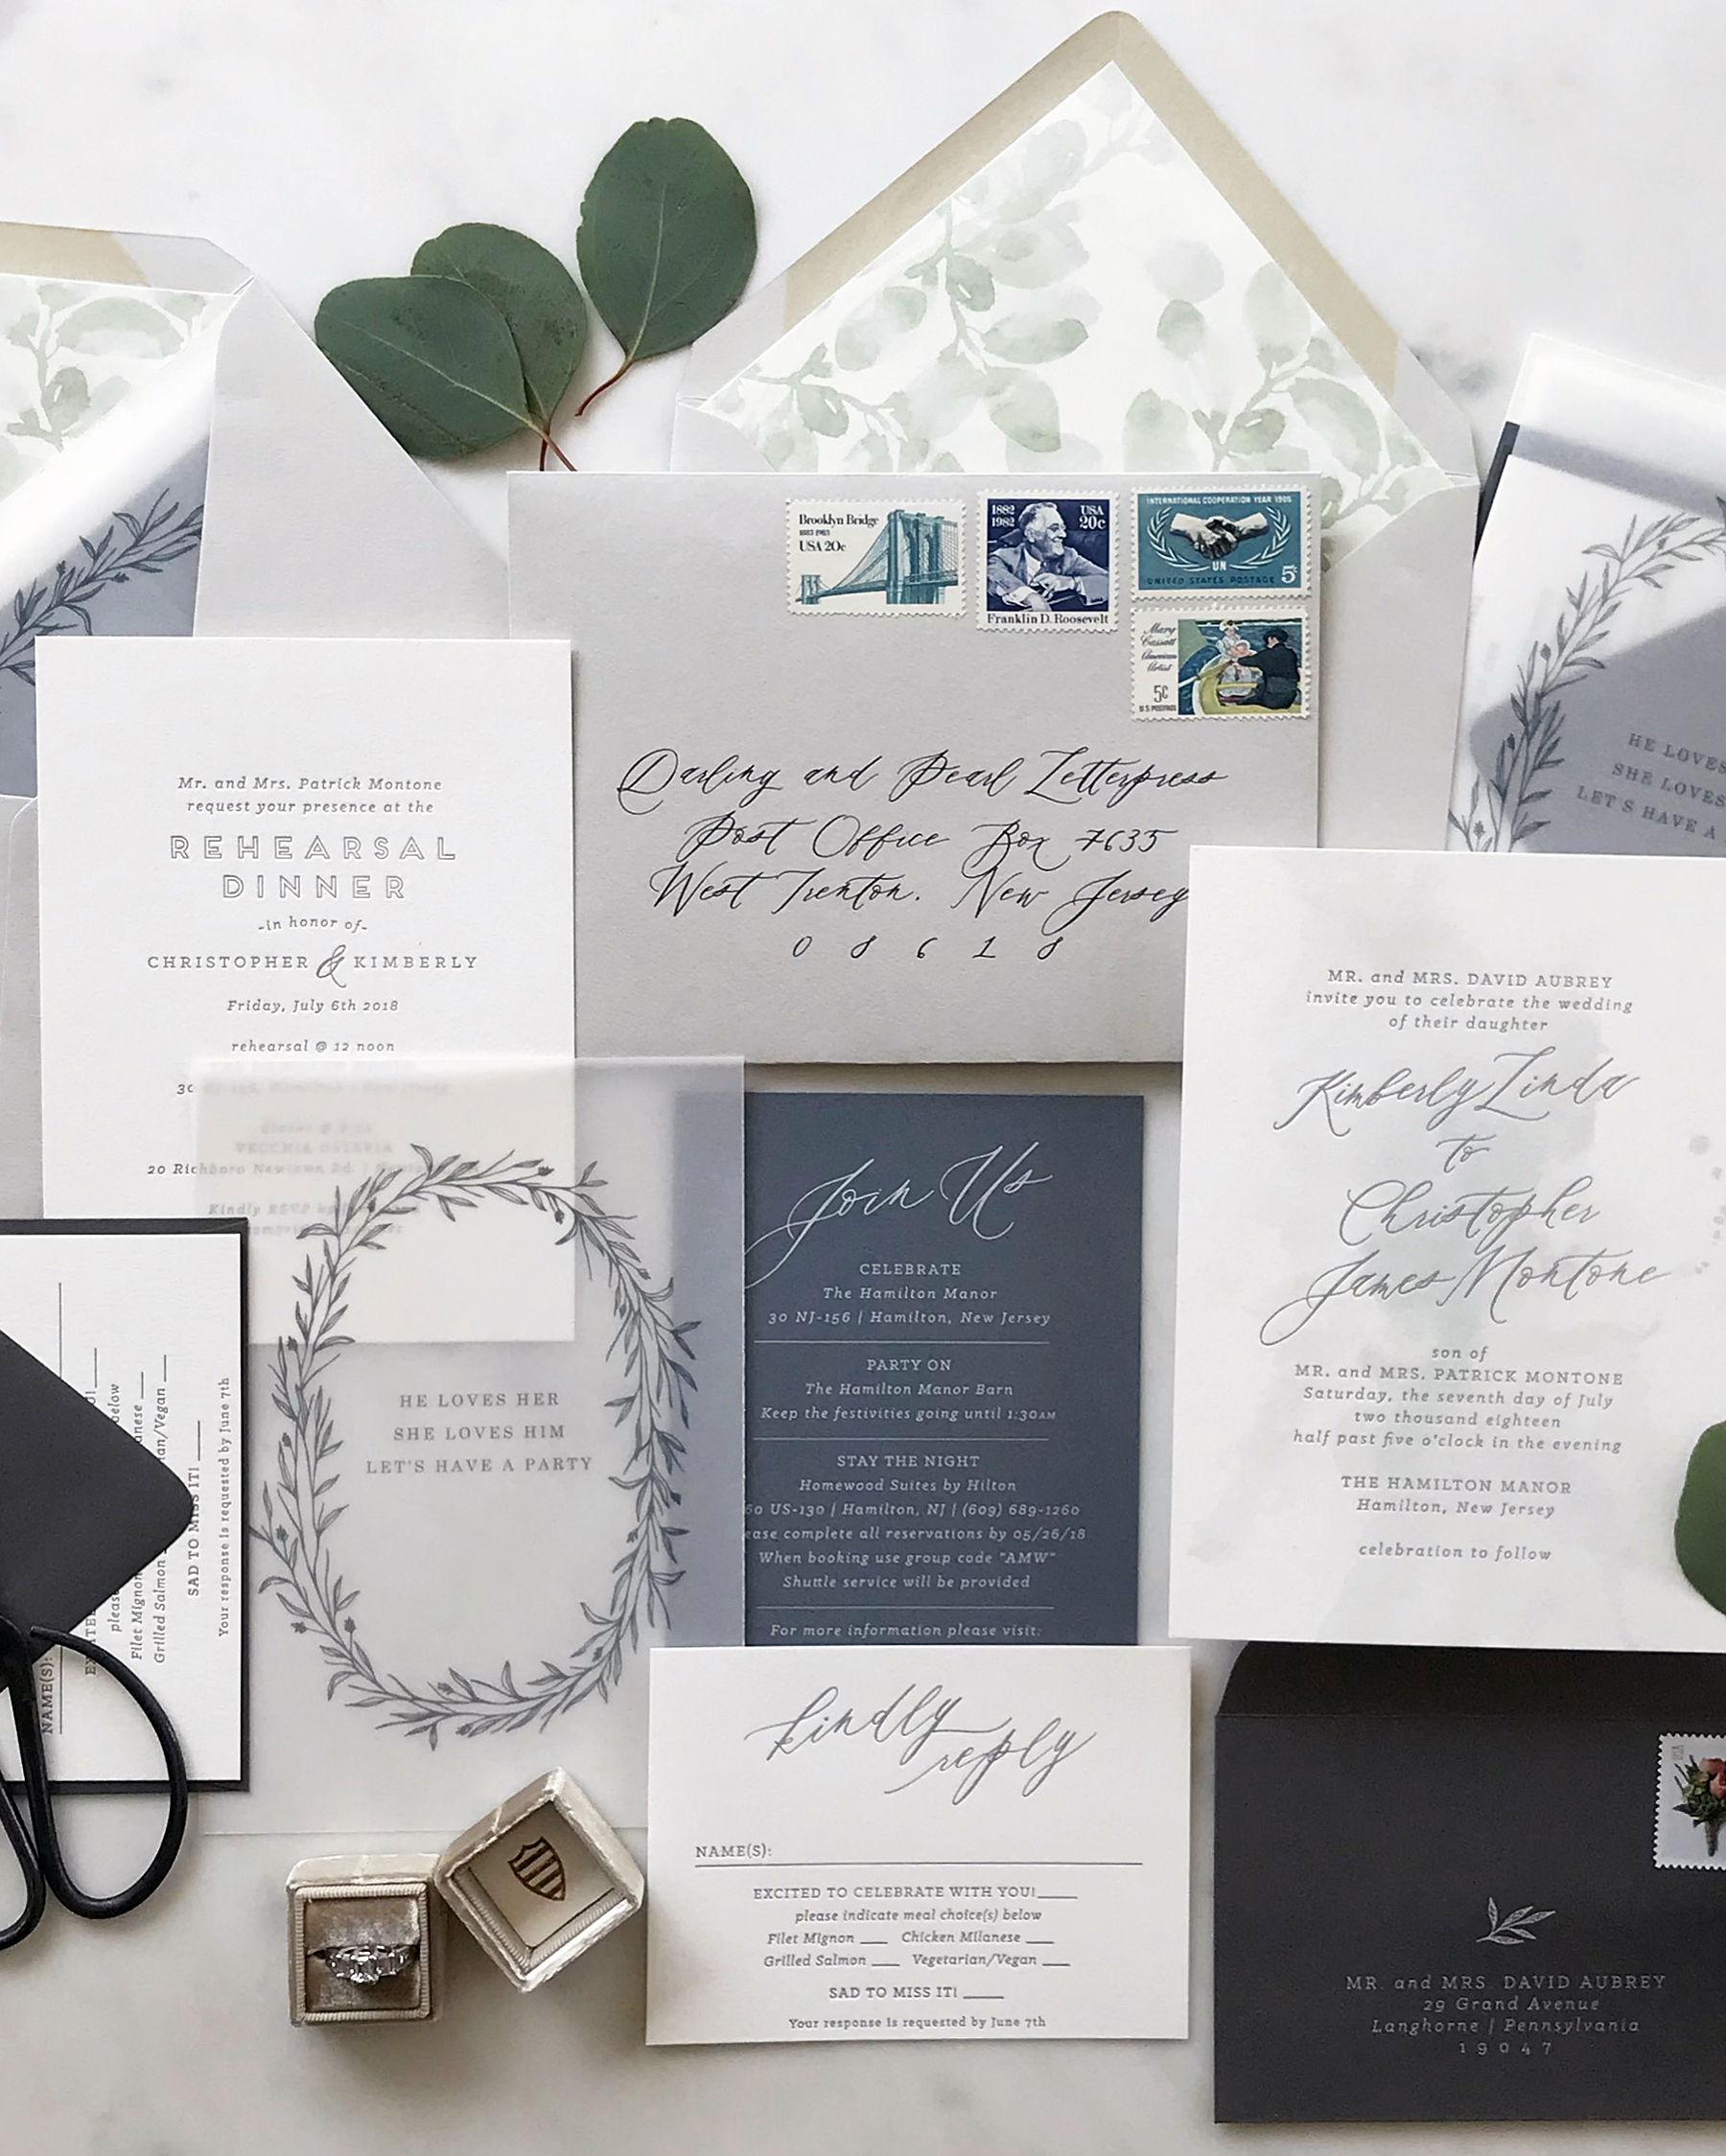 30 Unique Ways To Use Vellum Throughout Your Wedding